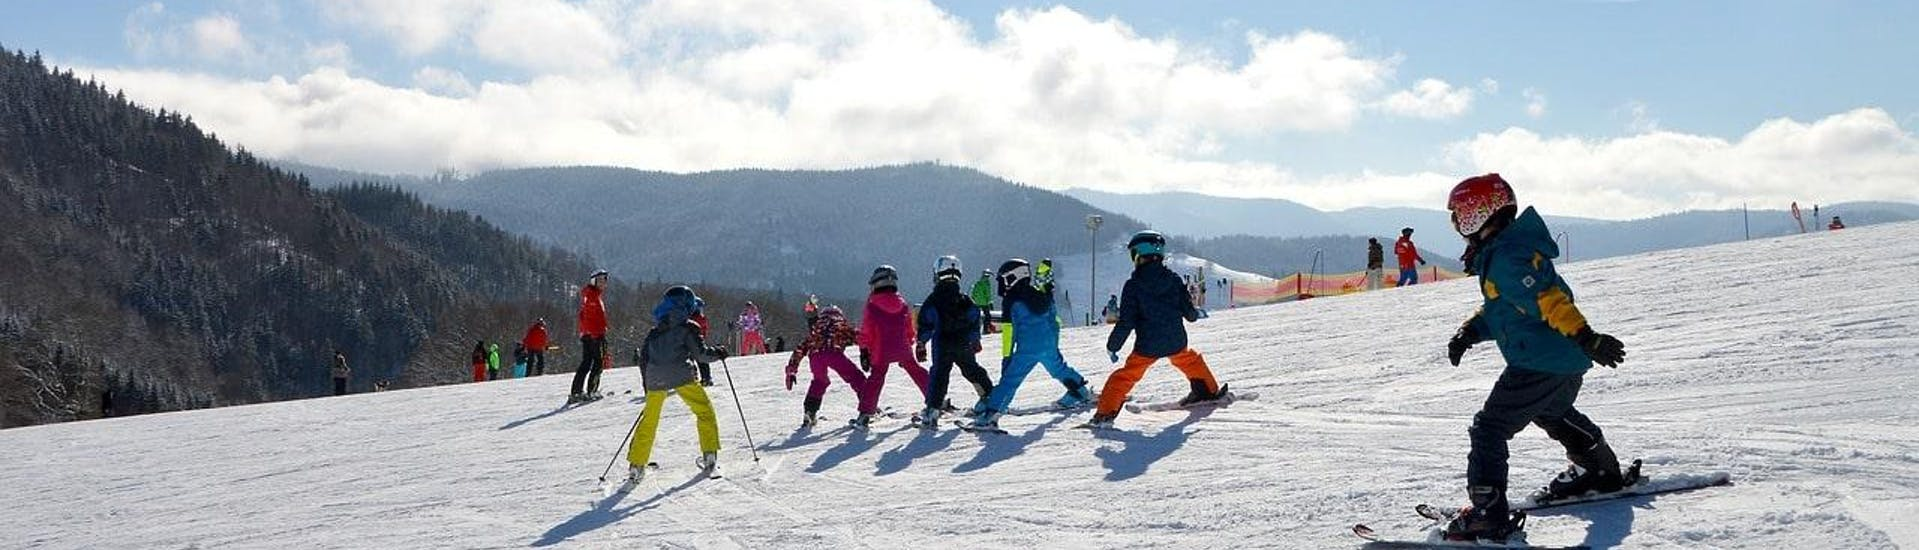 Kids are skiing down a slope during their Kids Ski Lessons (5-12 years) - Experienced with the ski school Moonshot La Bresse.